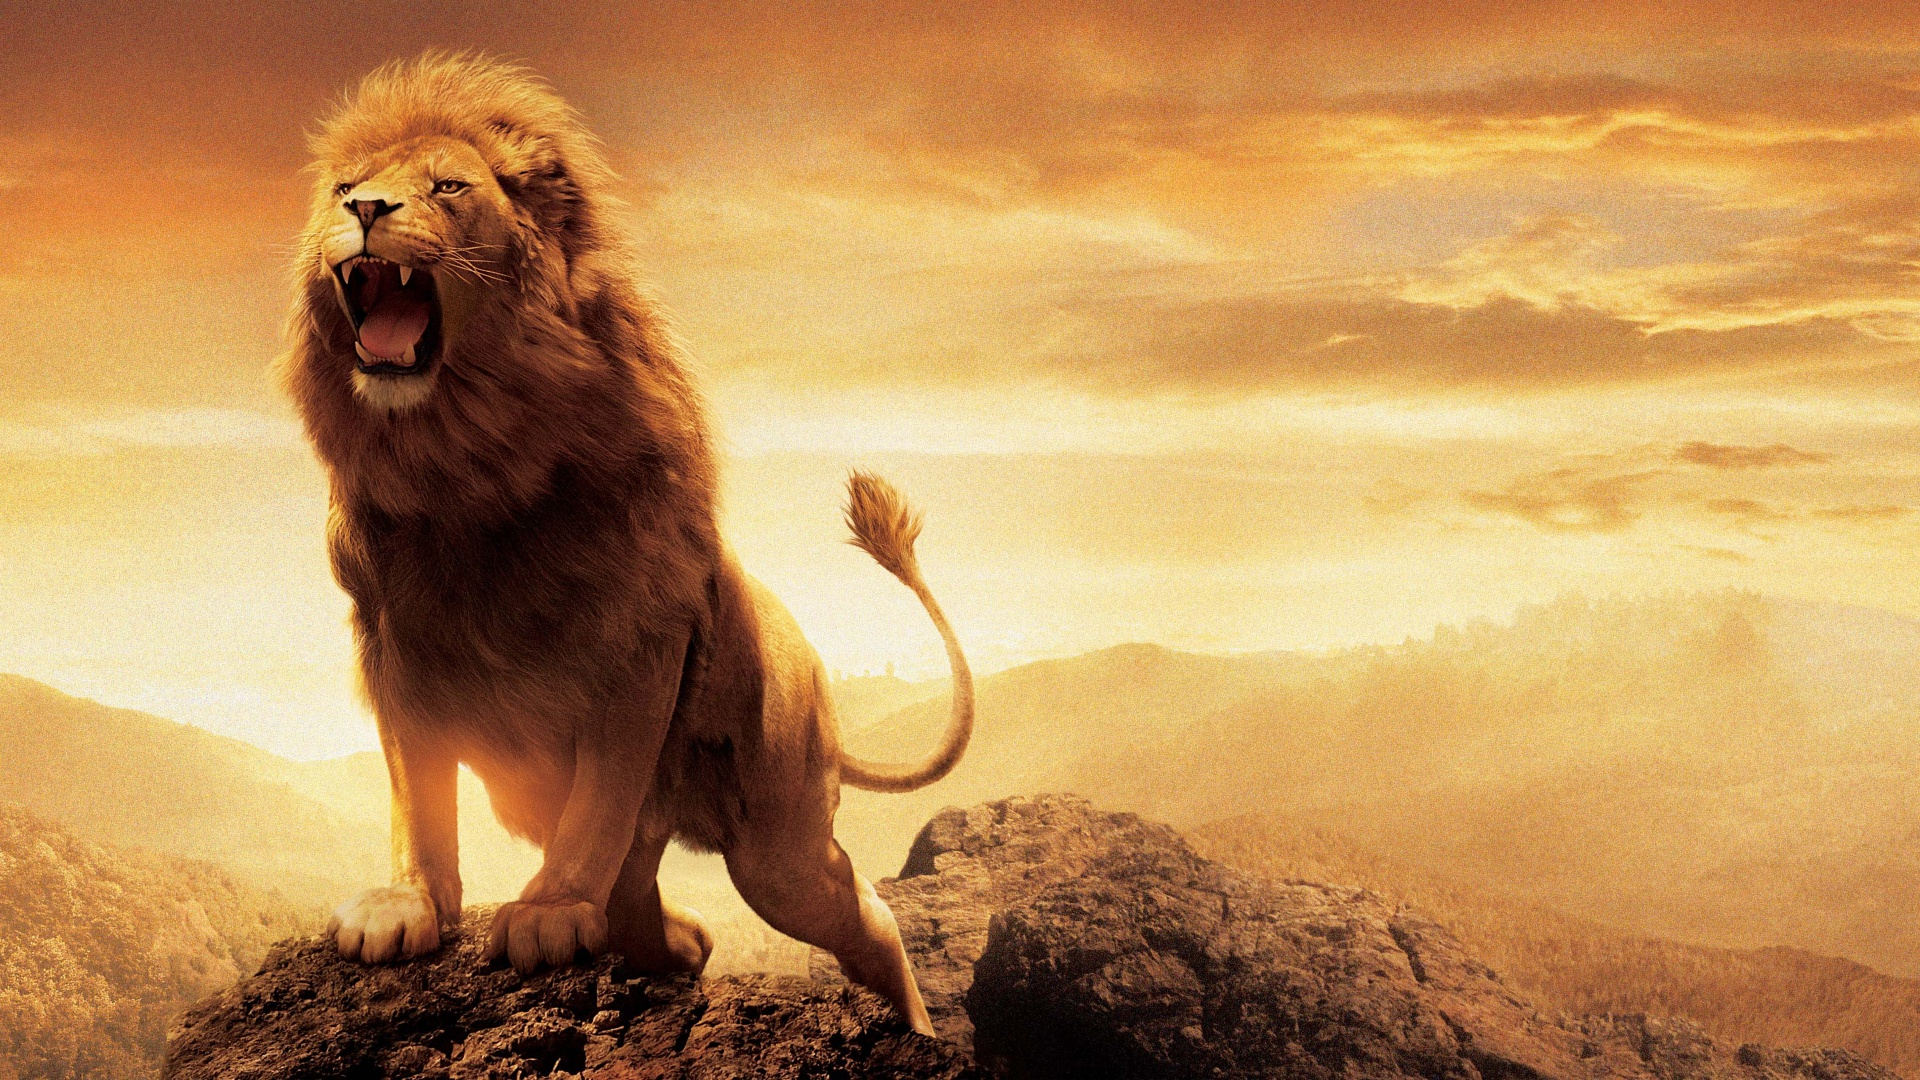 Narnia Lion Aslan Wallpapers